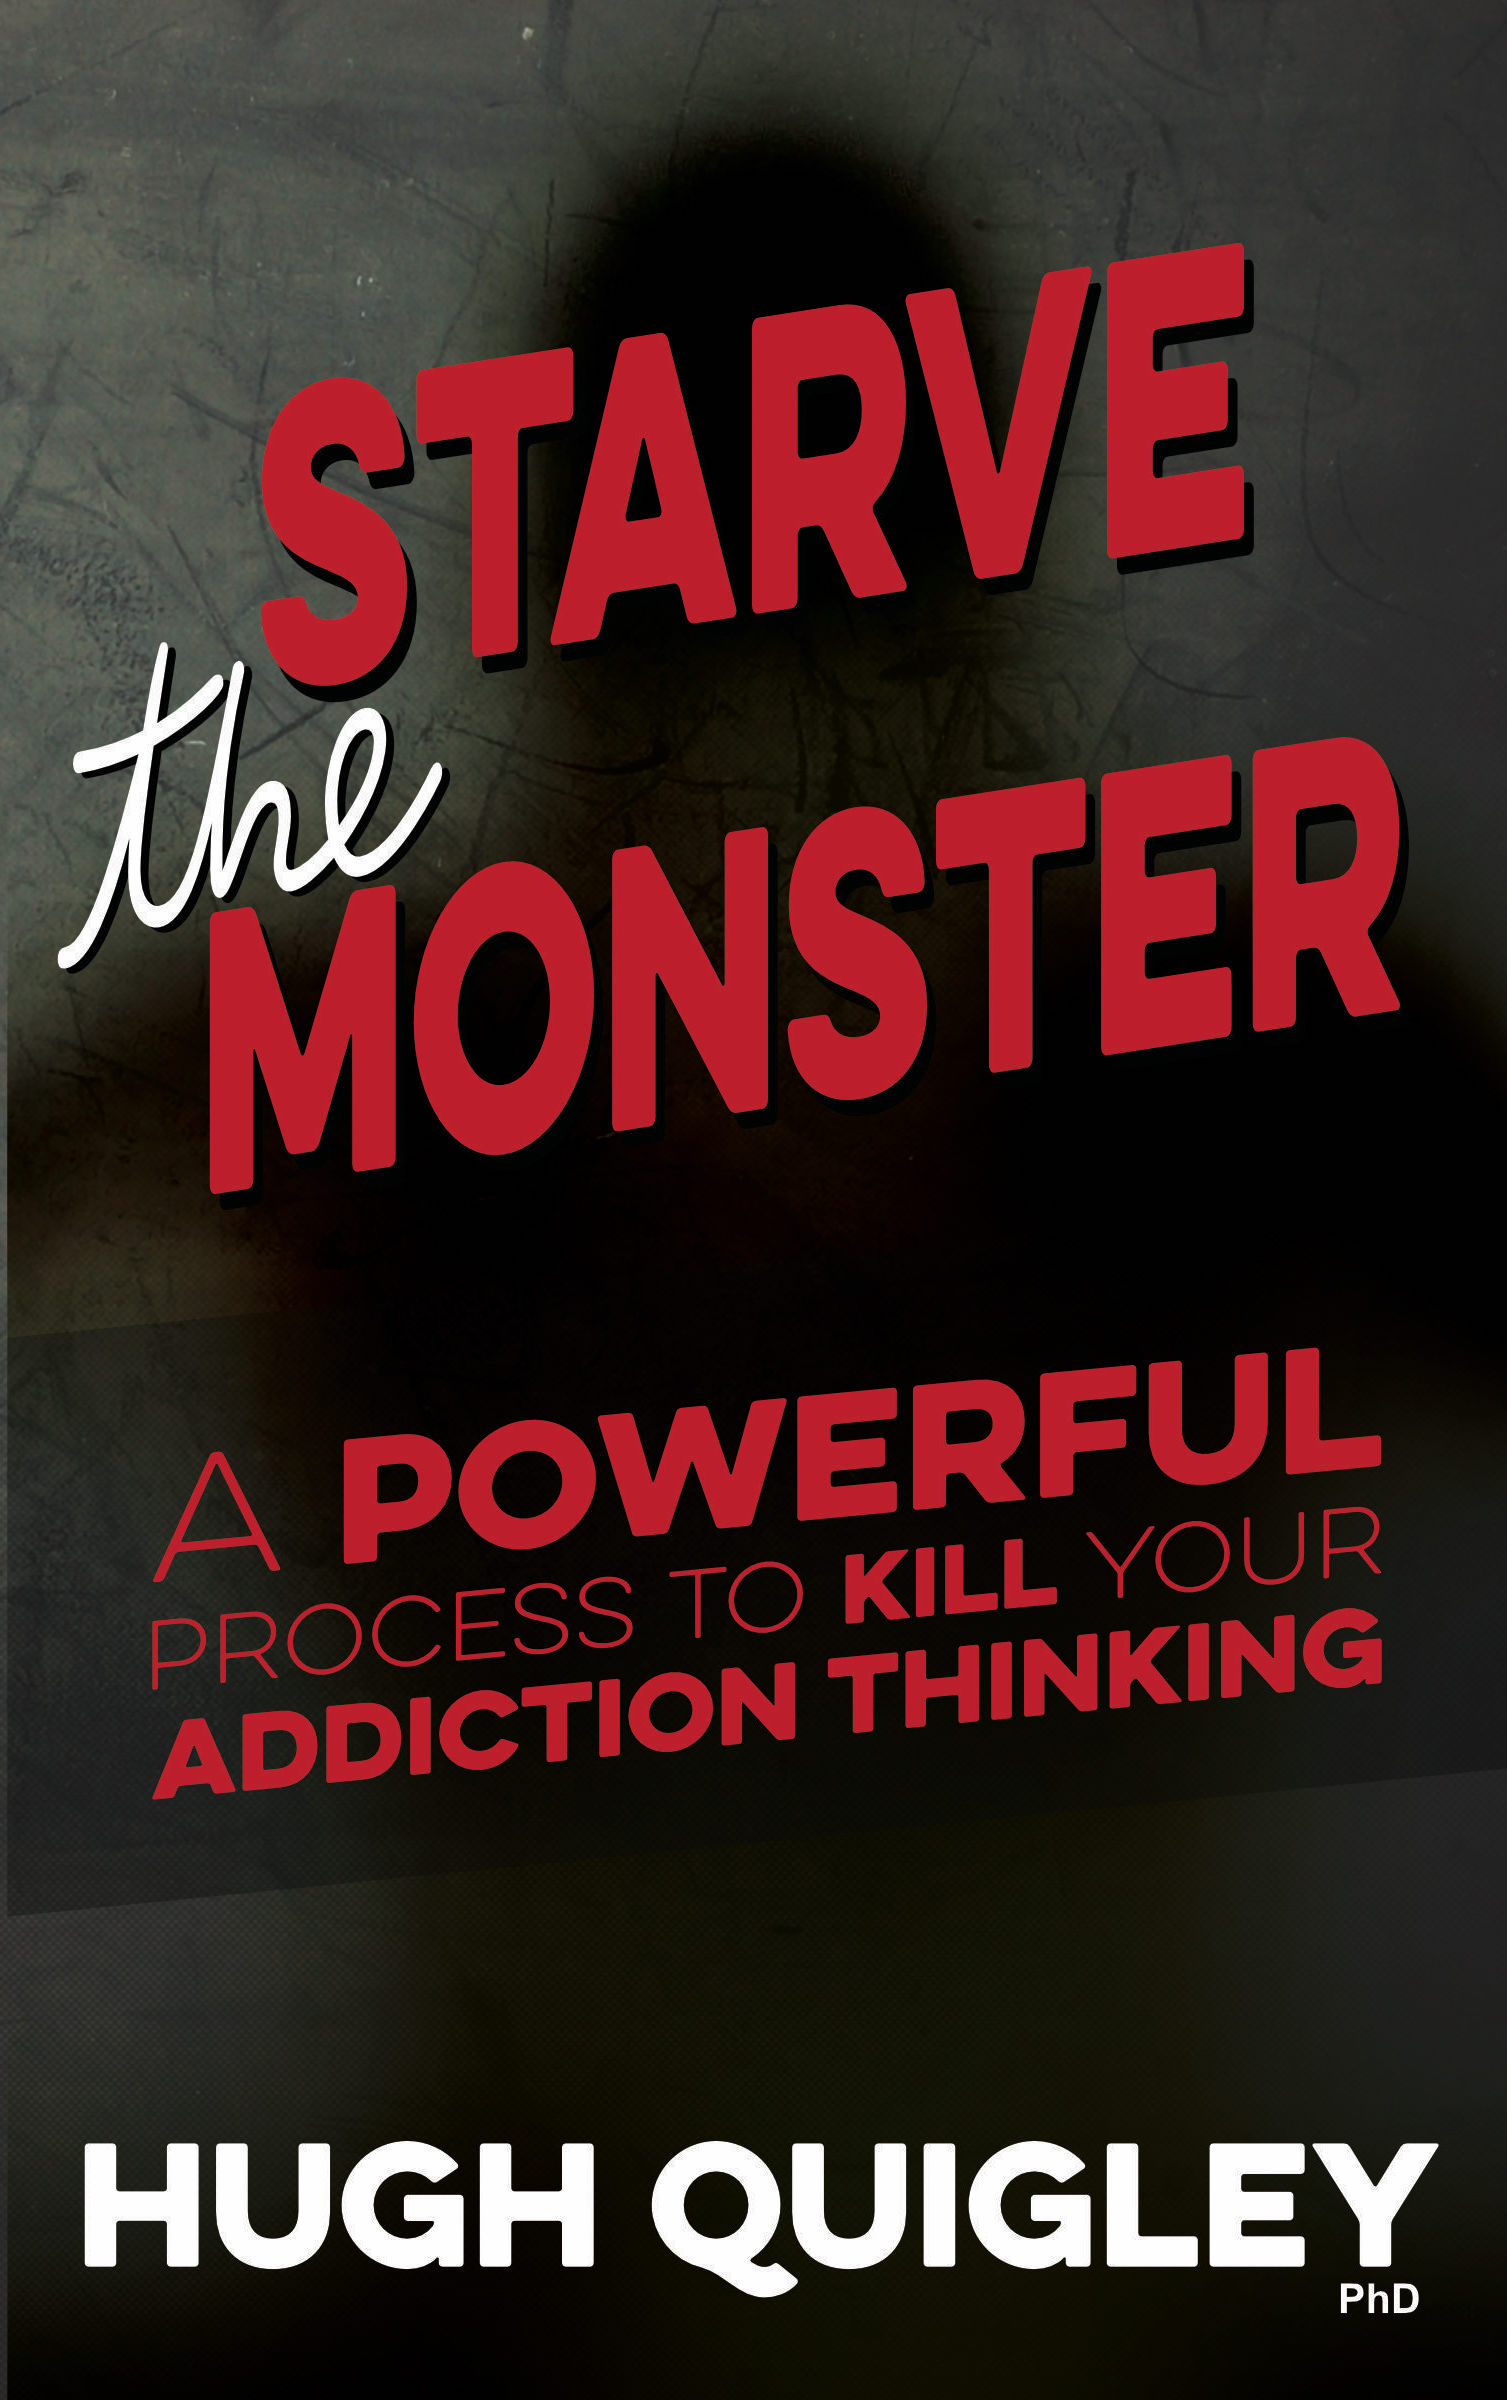 Starve the Monster by Hugh Quigley (HypnoArts/PA)